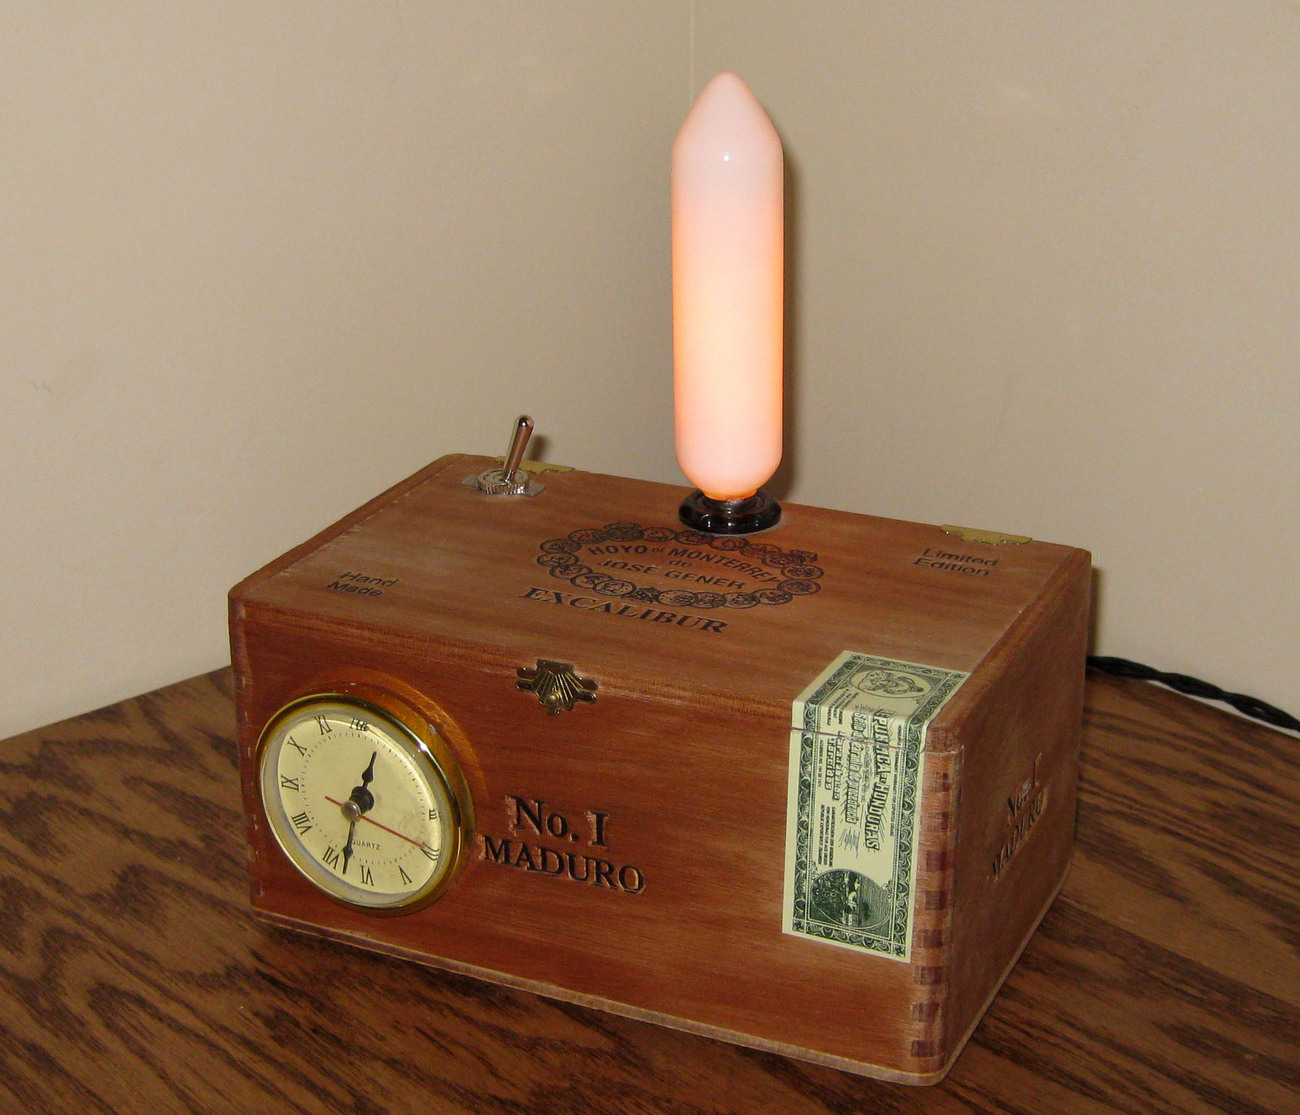 Cigar Box Desk Lamp w/ Clock: Hoyo de Monterrey - Excalibur Maduro No. 1